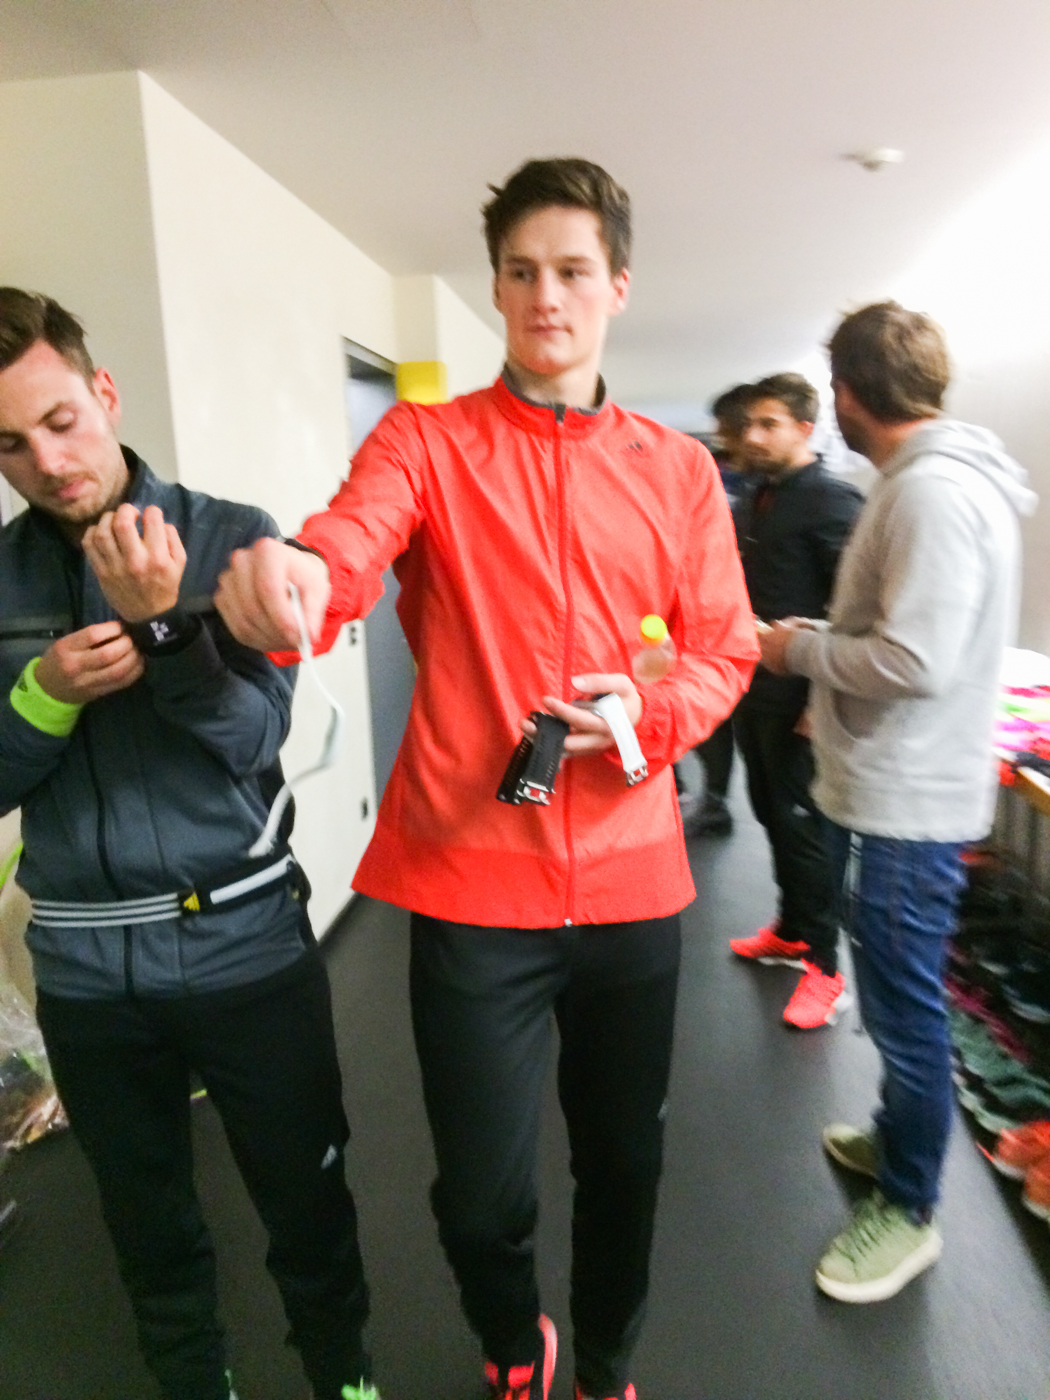 Adidas-MiCoach-Behind_the_scenes-Shooting-Fitnessmodel-21